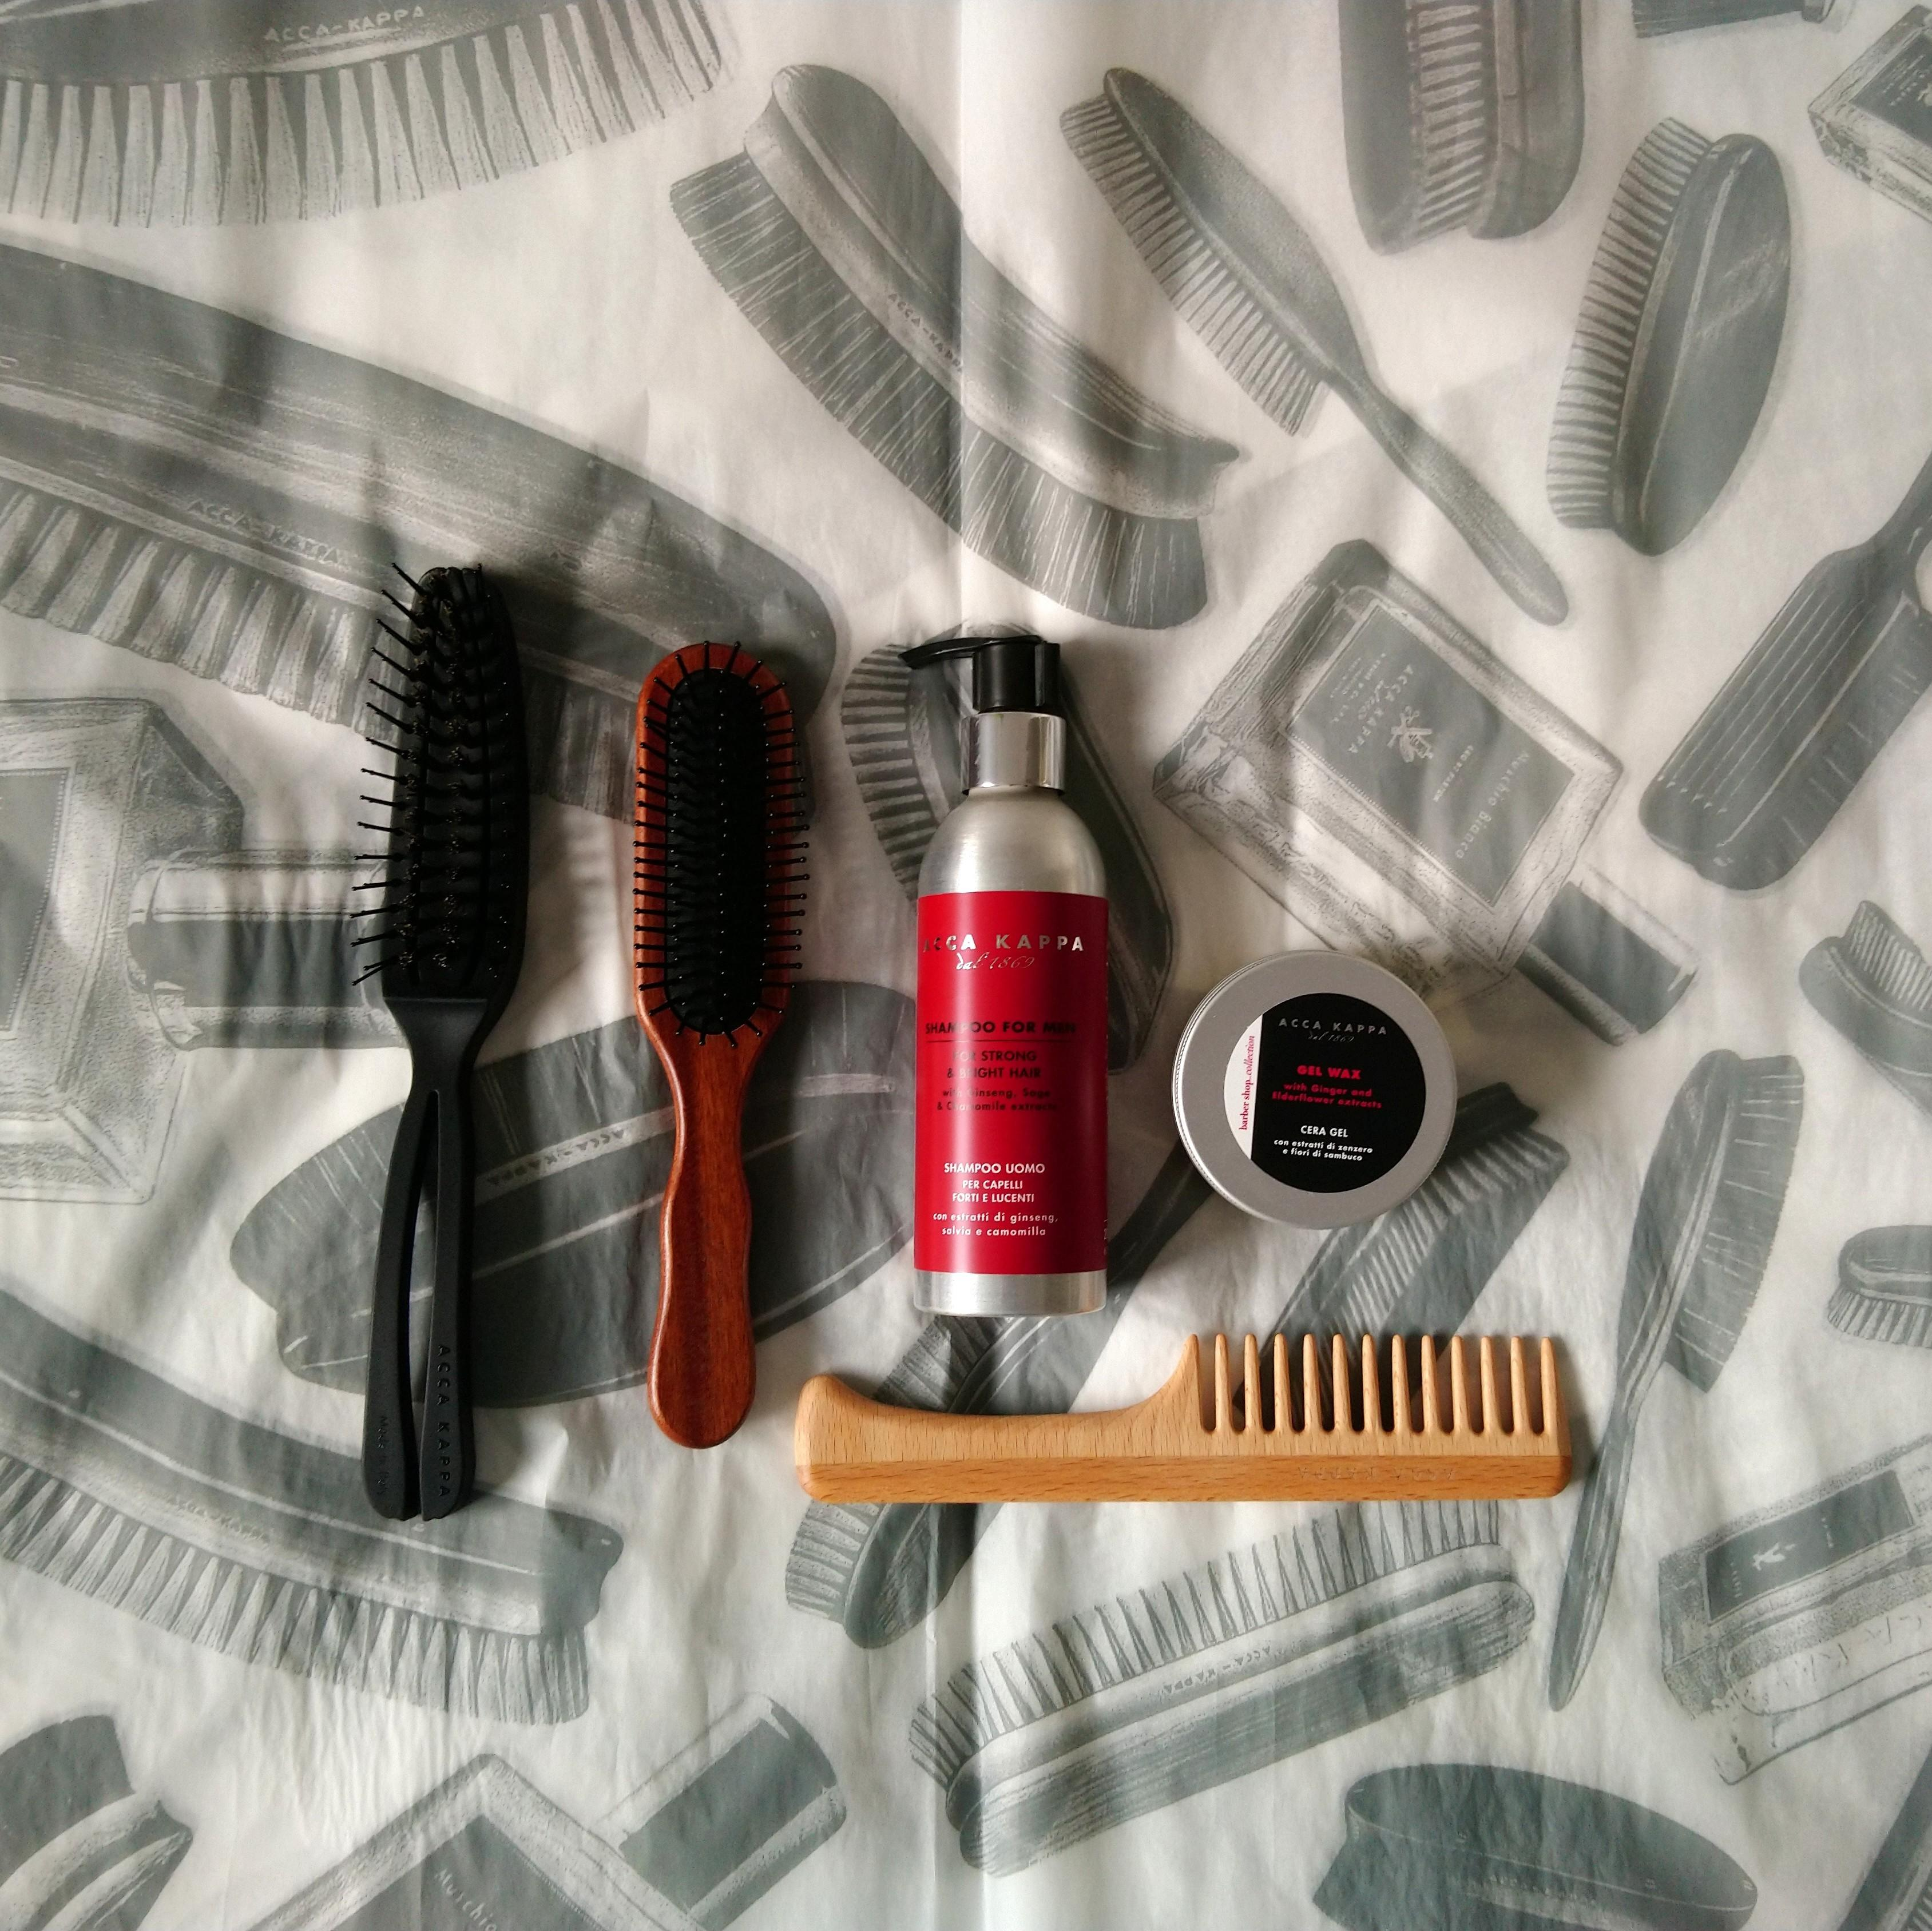 The Airy No.3, Pneumatic Kotibe Wood Pom Pin Hairbrush, The Barbershop Men's Shampoo, The Barbershop Collection Styling Gel Wax and The Beechwood Coarse Tooth Comb